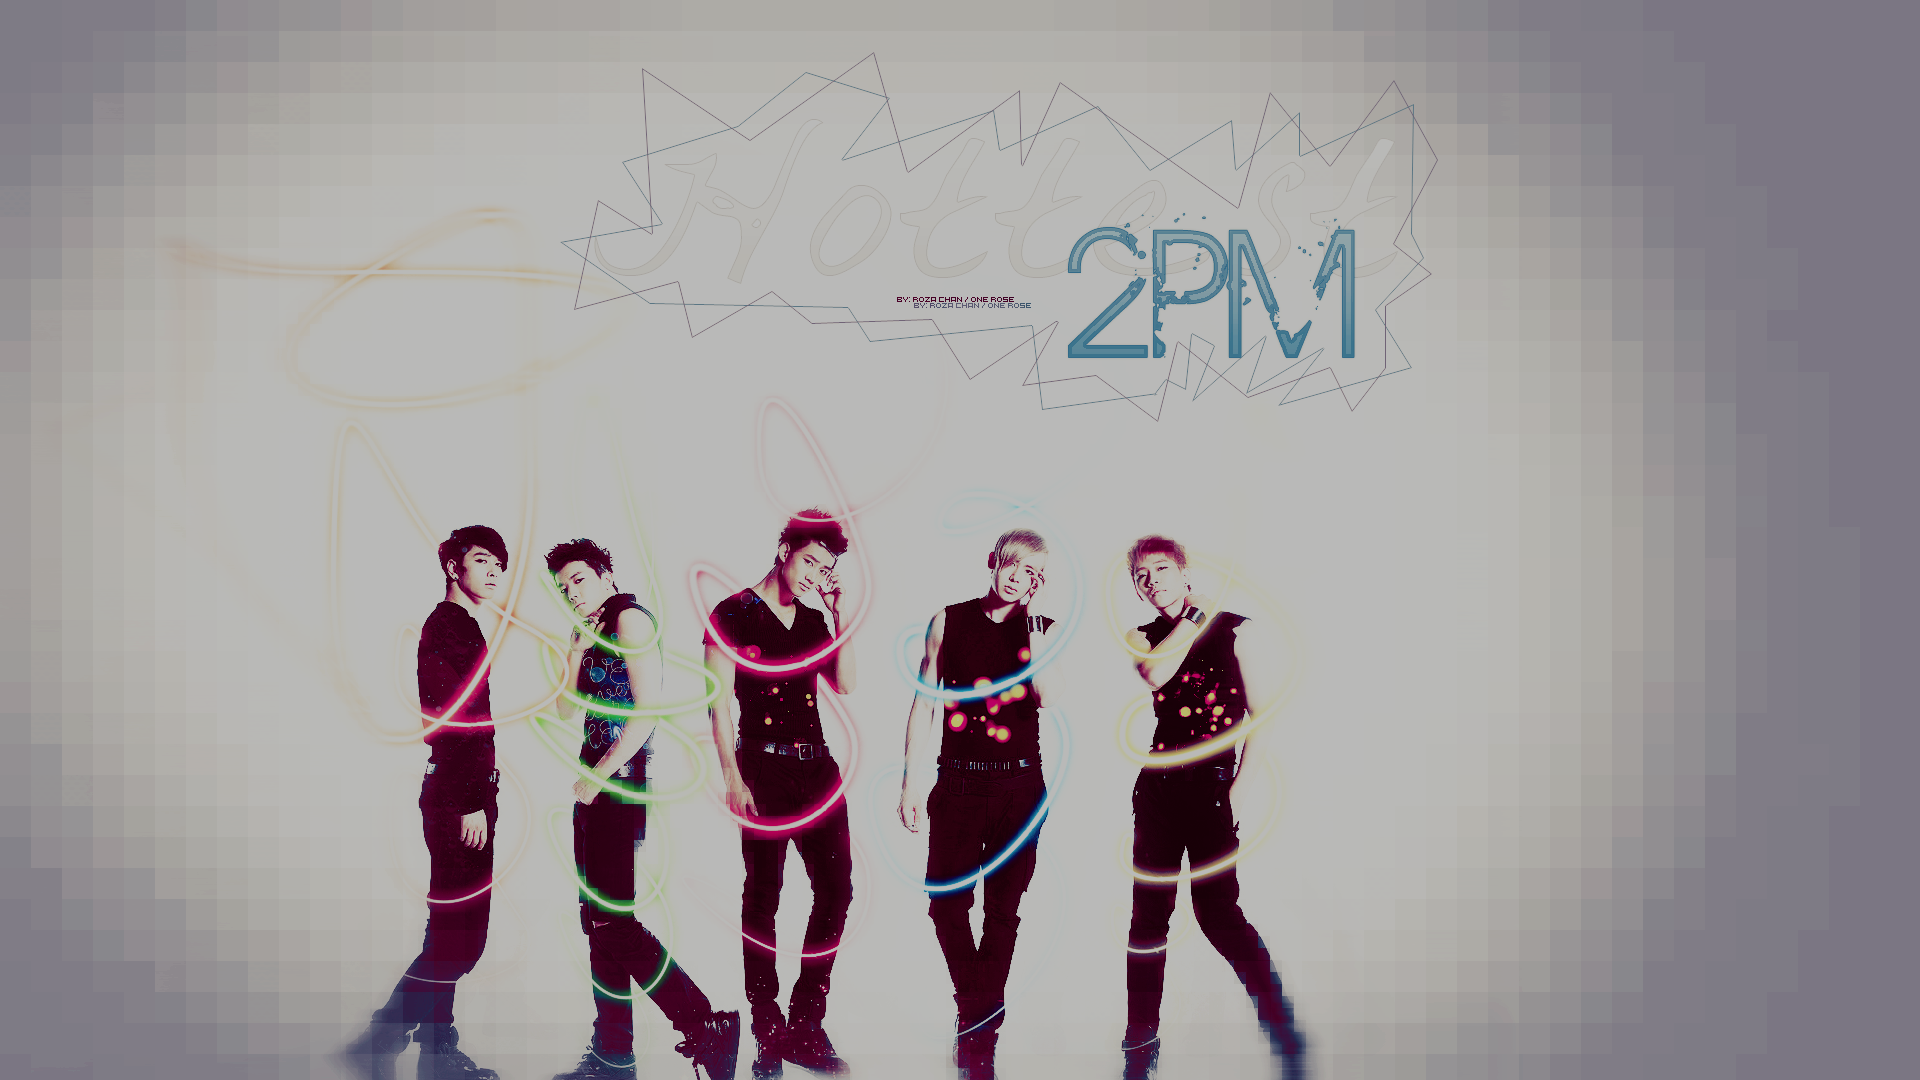 2Pm wallpaper  229563